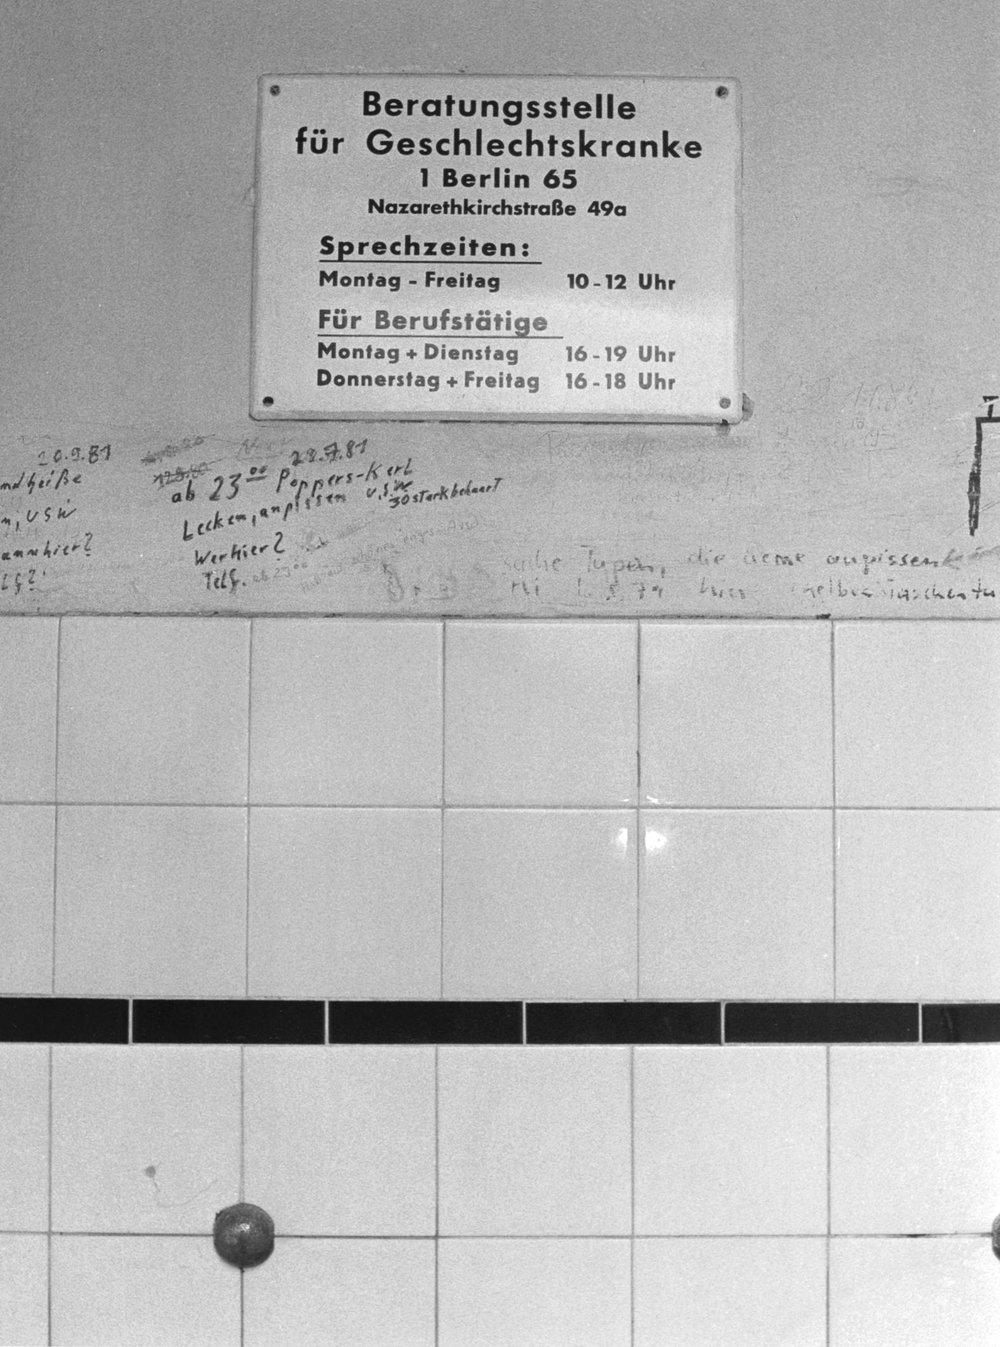 A photo of a West Berlin toilet from 1987 depicts cruising graffiti below a sign directing patrons to a sexual health clinic